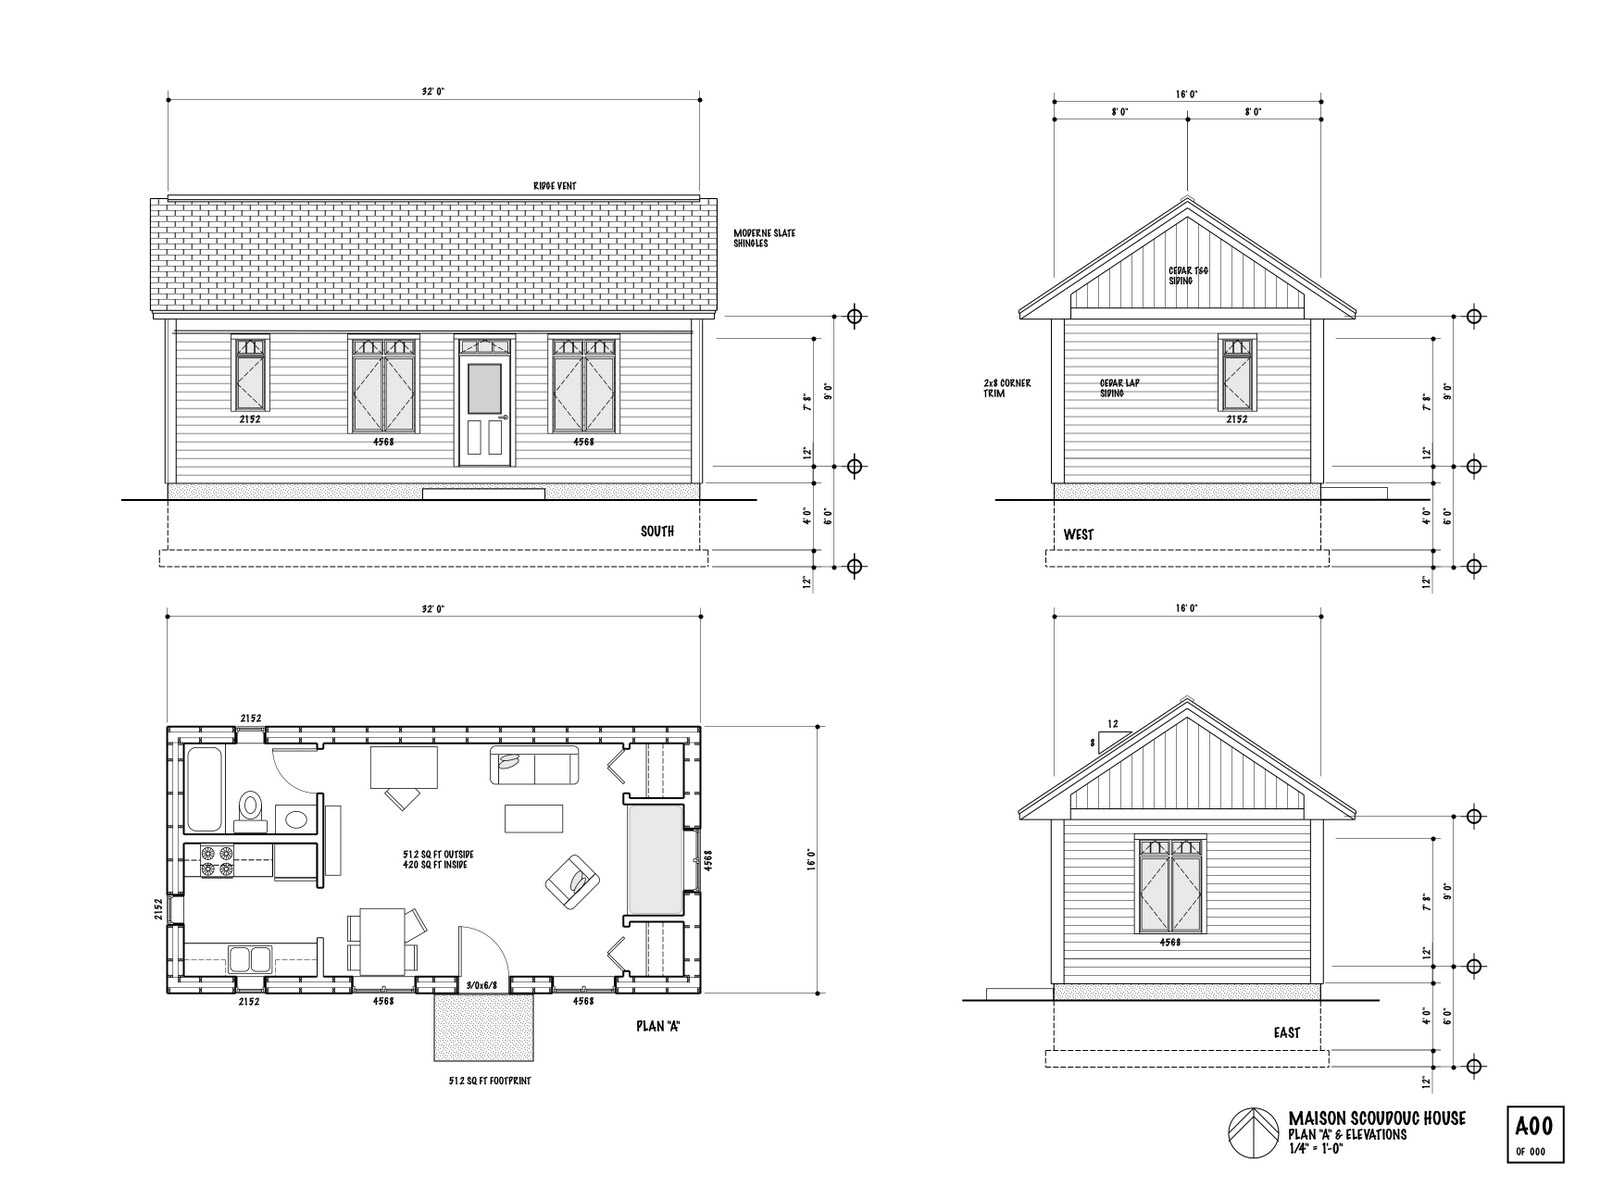 Nb superinsulated house maisons scoudouc houses - Plans de maison gratuit ...